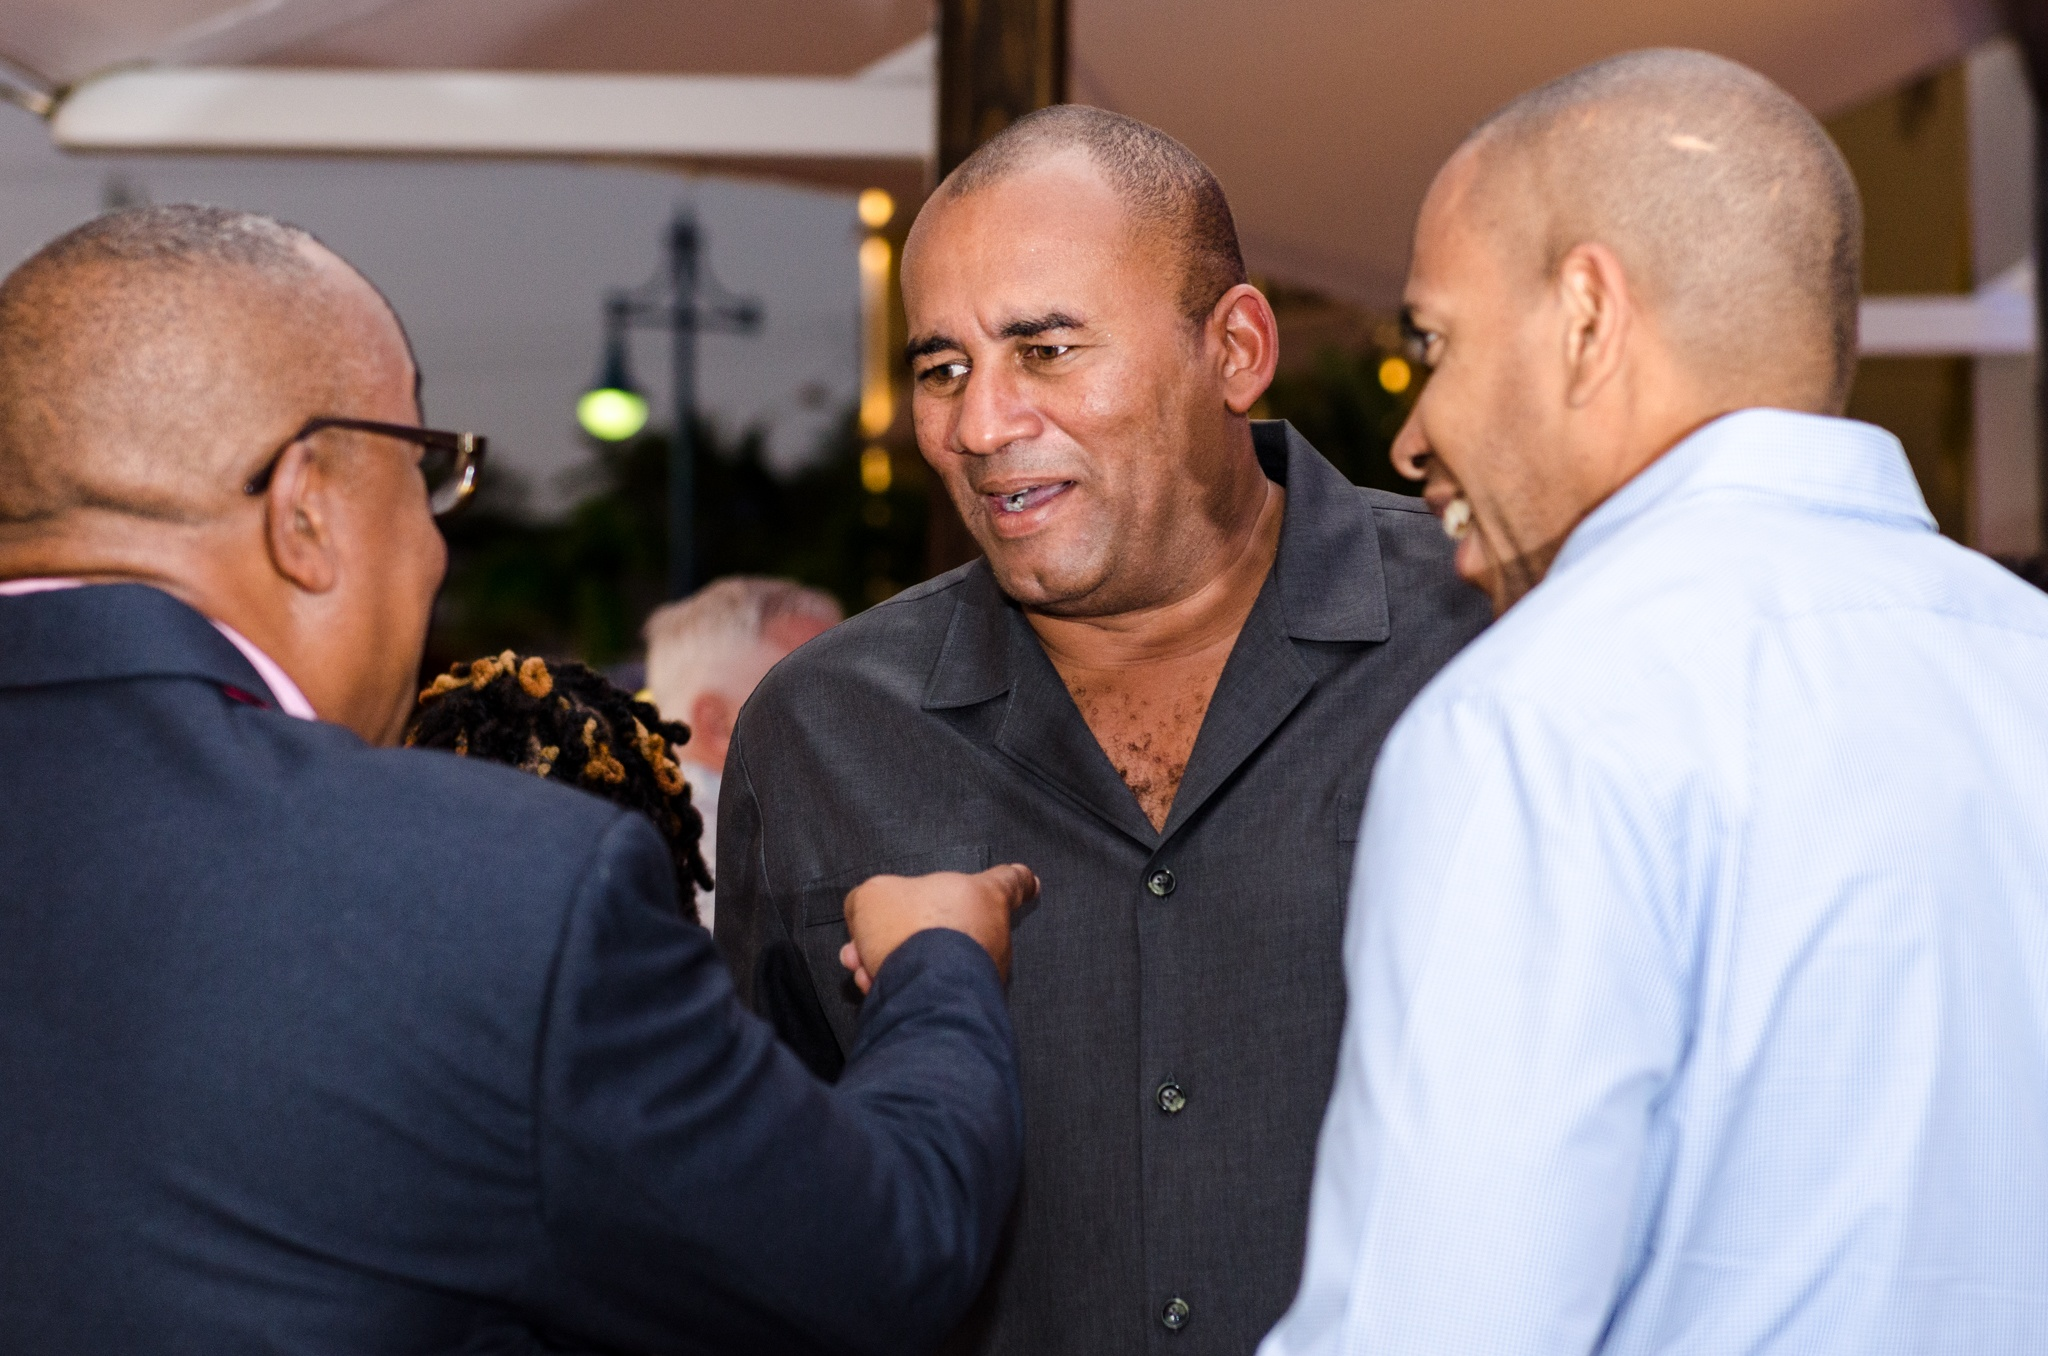 The Hon. Richard Sealy, Minister of Tourism sharing a joke with David Noel and guest